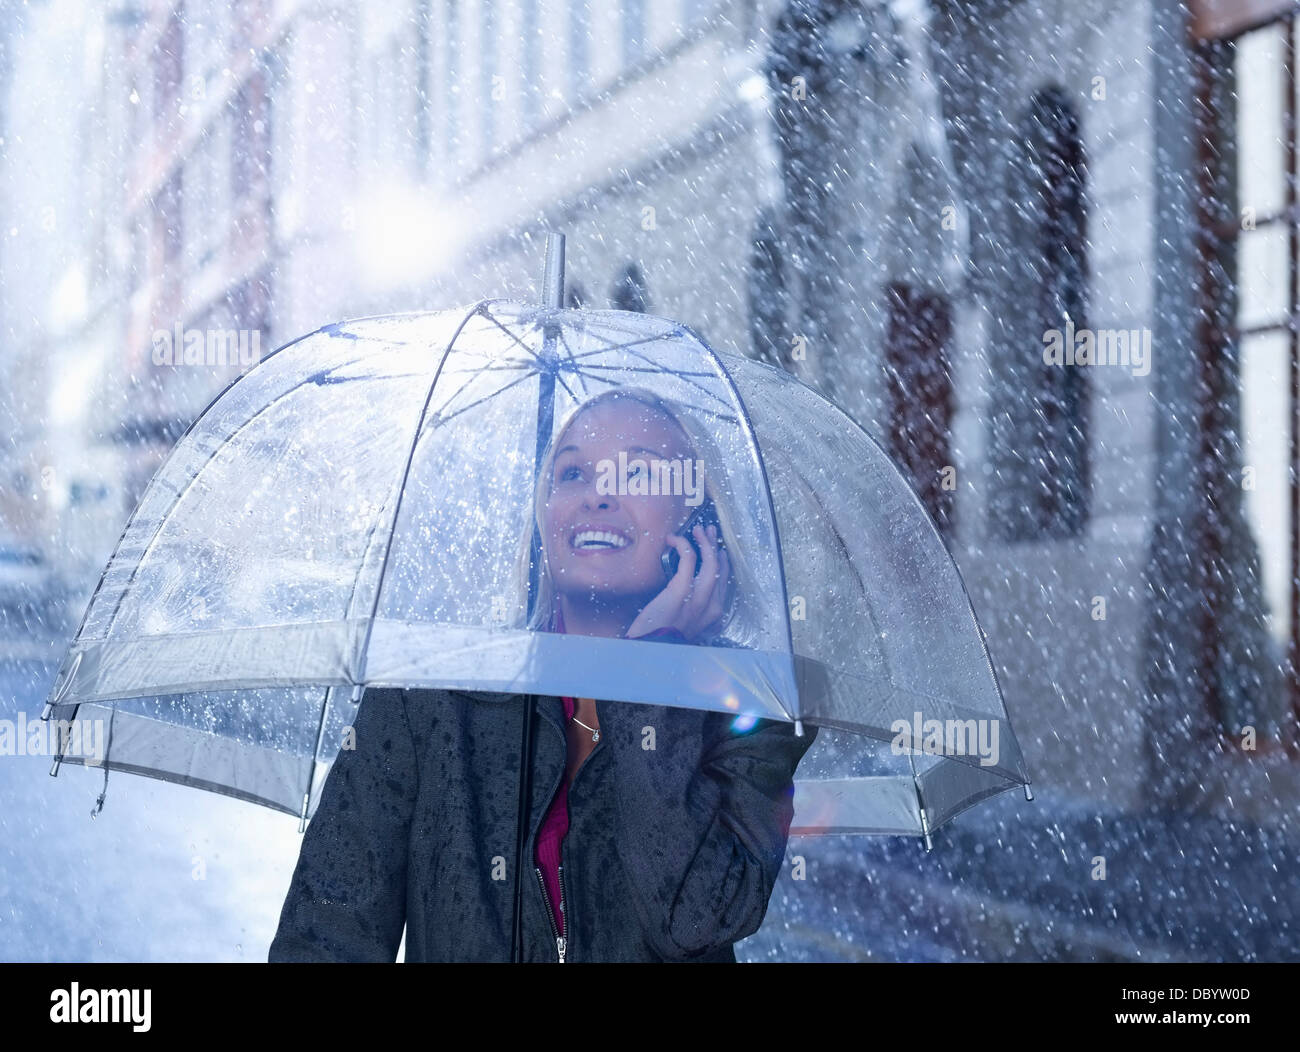 Smiling businesswoman talking on cell phone under umbrella in rainy street Stock Photo